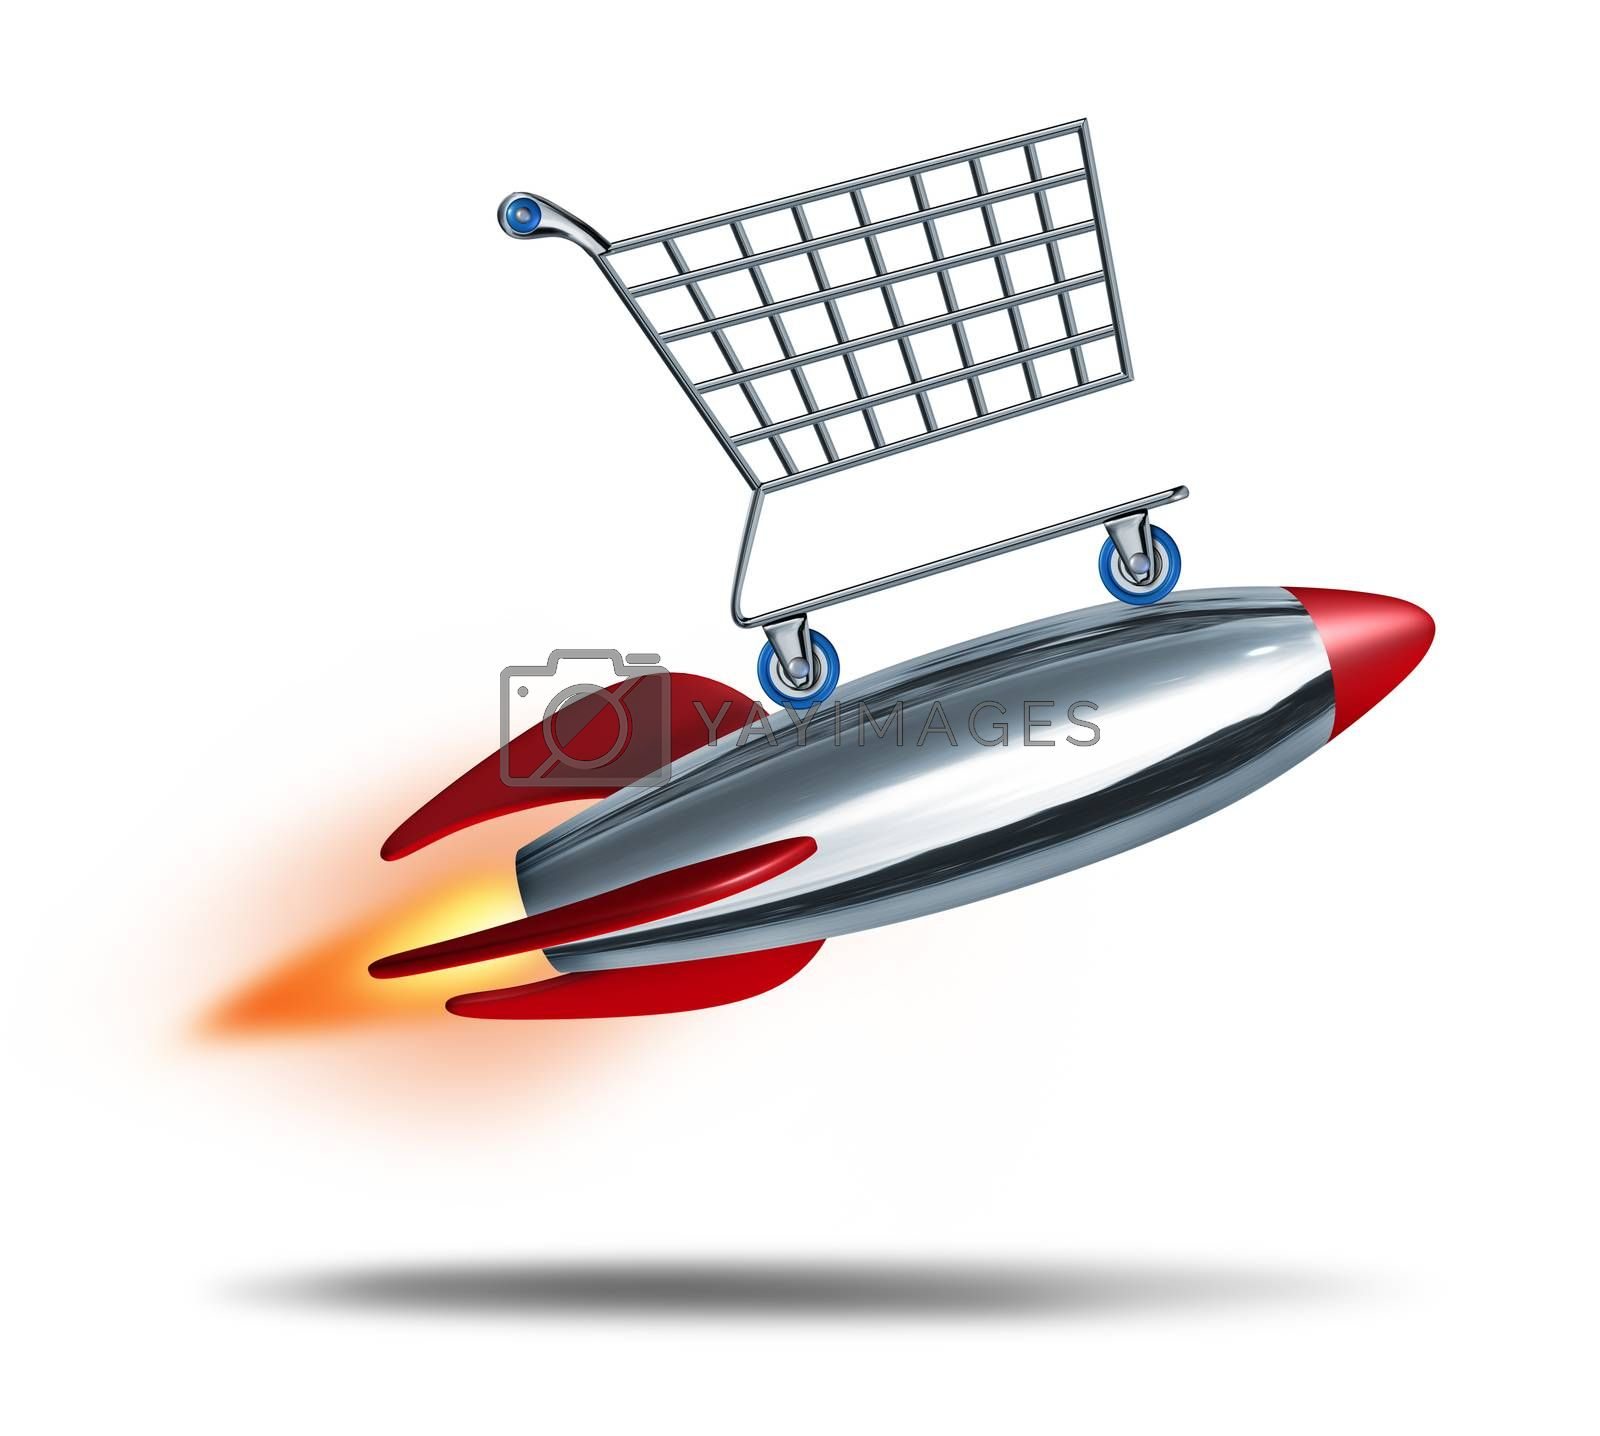 Speed shopping and quick check out concept with a shop cart flying in the air with a rocket blast as a symbol of fast consumer sales service on a white background.